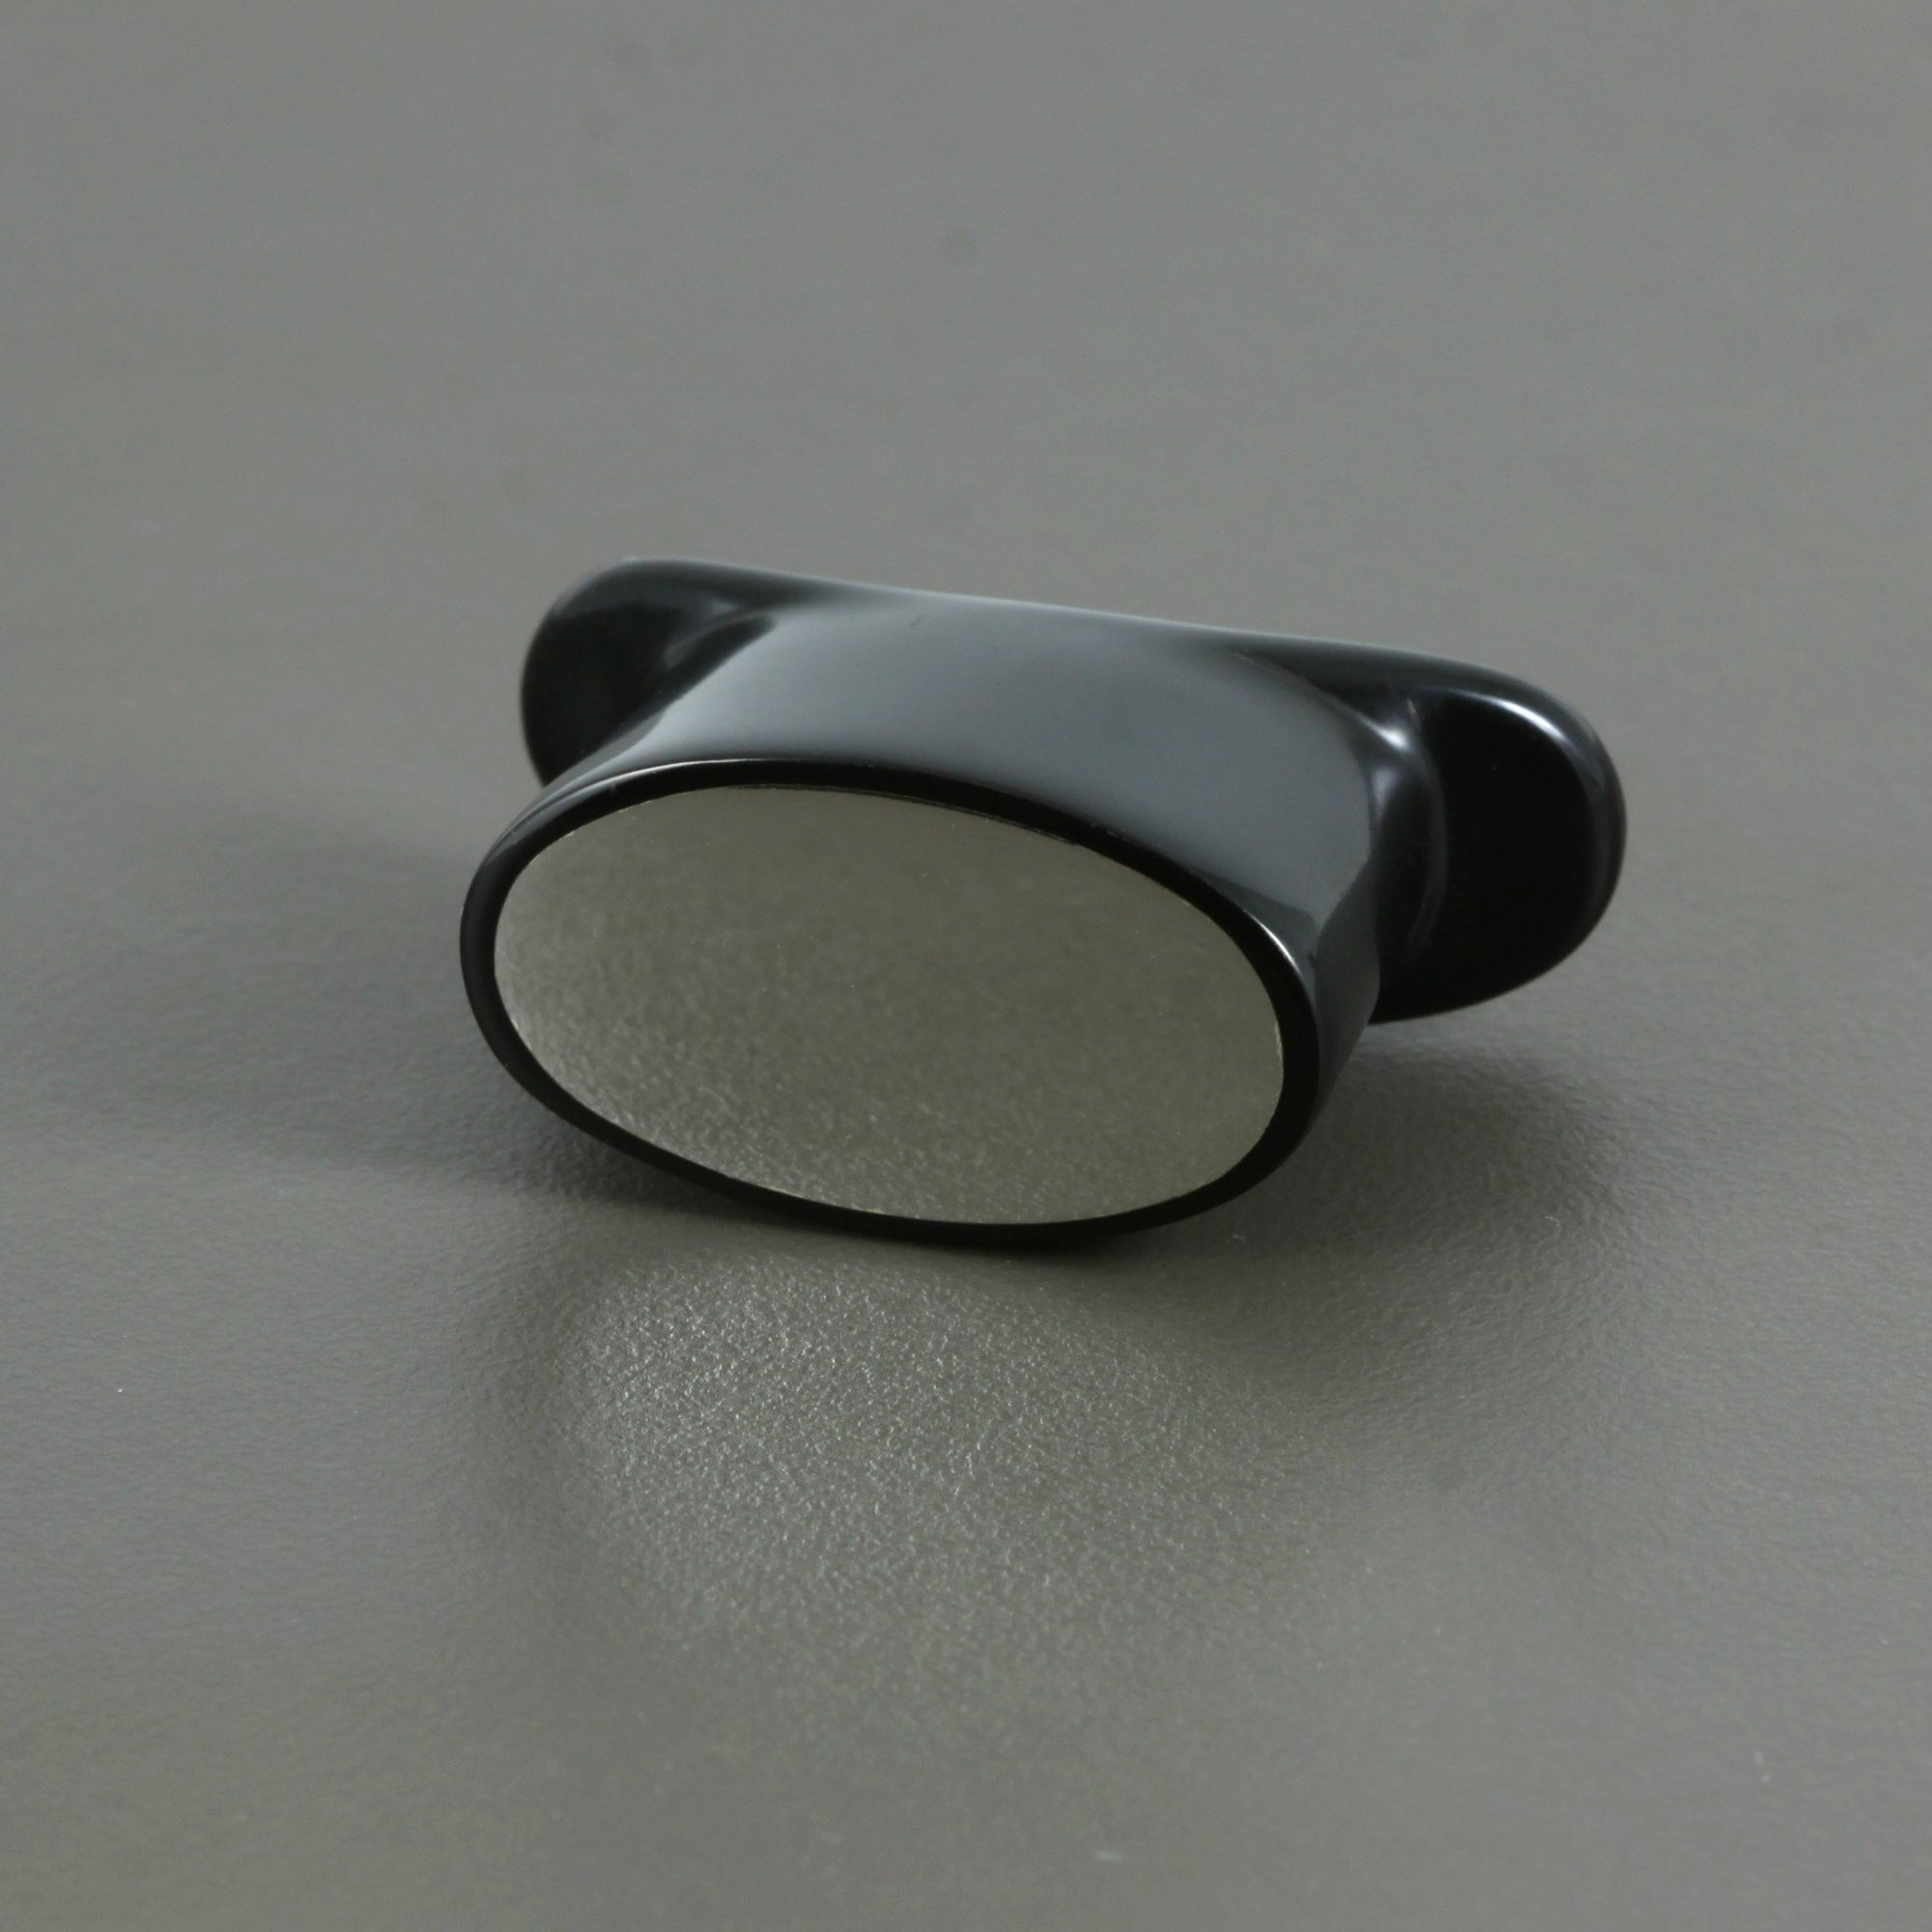 Delrin Oval Labret Plug - Flush Sterling Silver Inlay